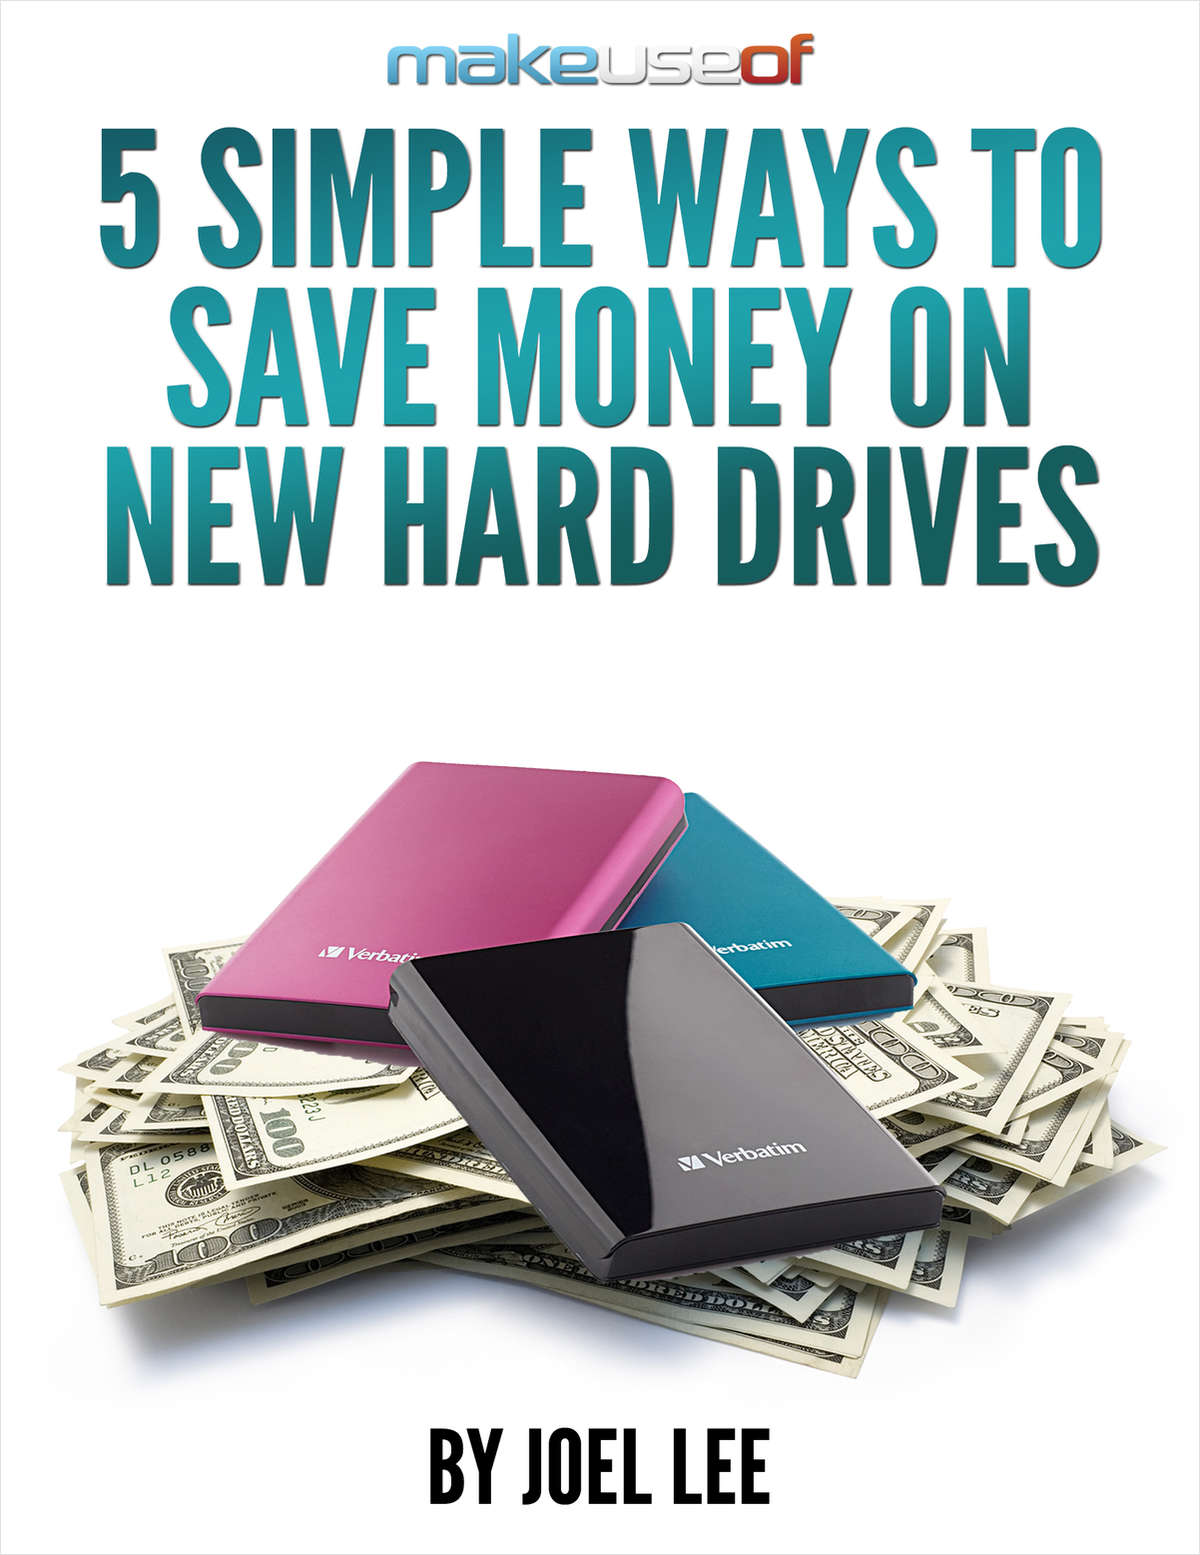 5 Simple Ways to Save Money on New Hard Drives